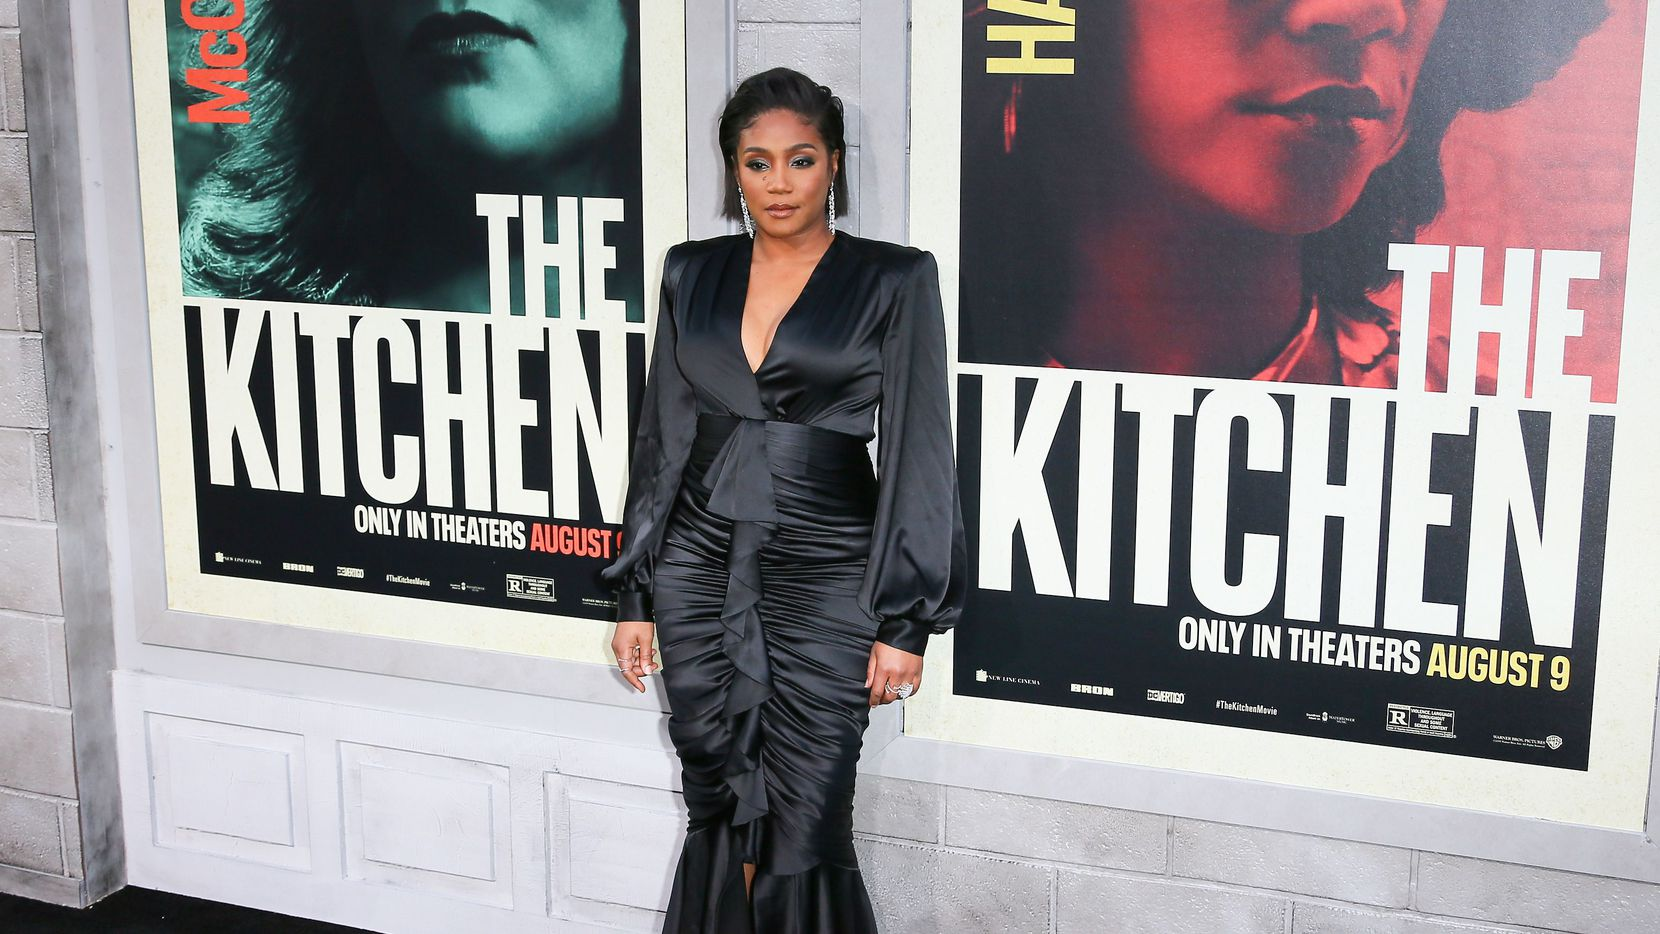 """Actress Tiffany Haddish attends the world premiere of """"The Kitchen"""" at the TCL Chinese Theatre in Hollywood, California on August 5, 2019."""